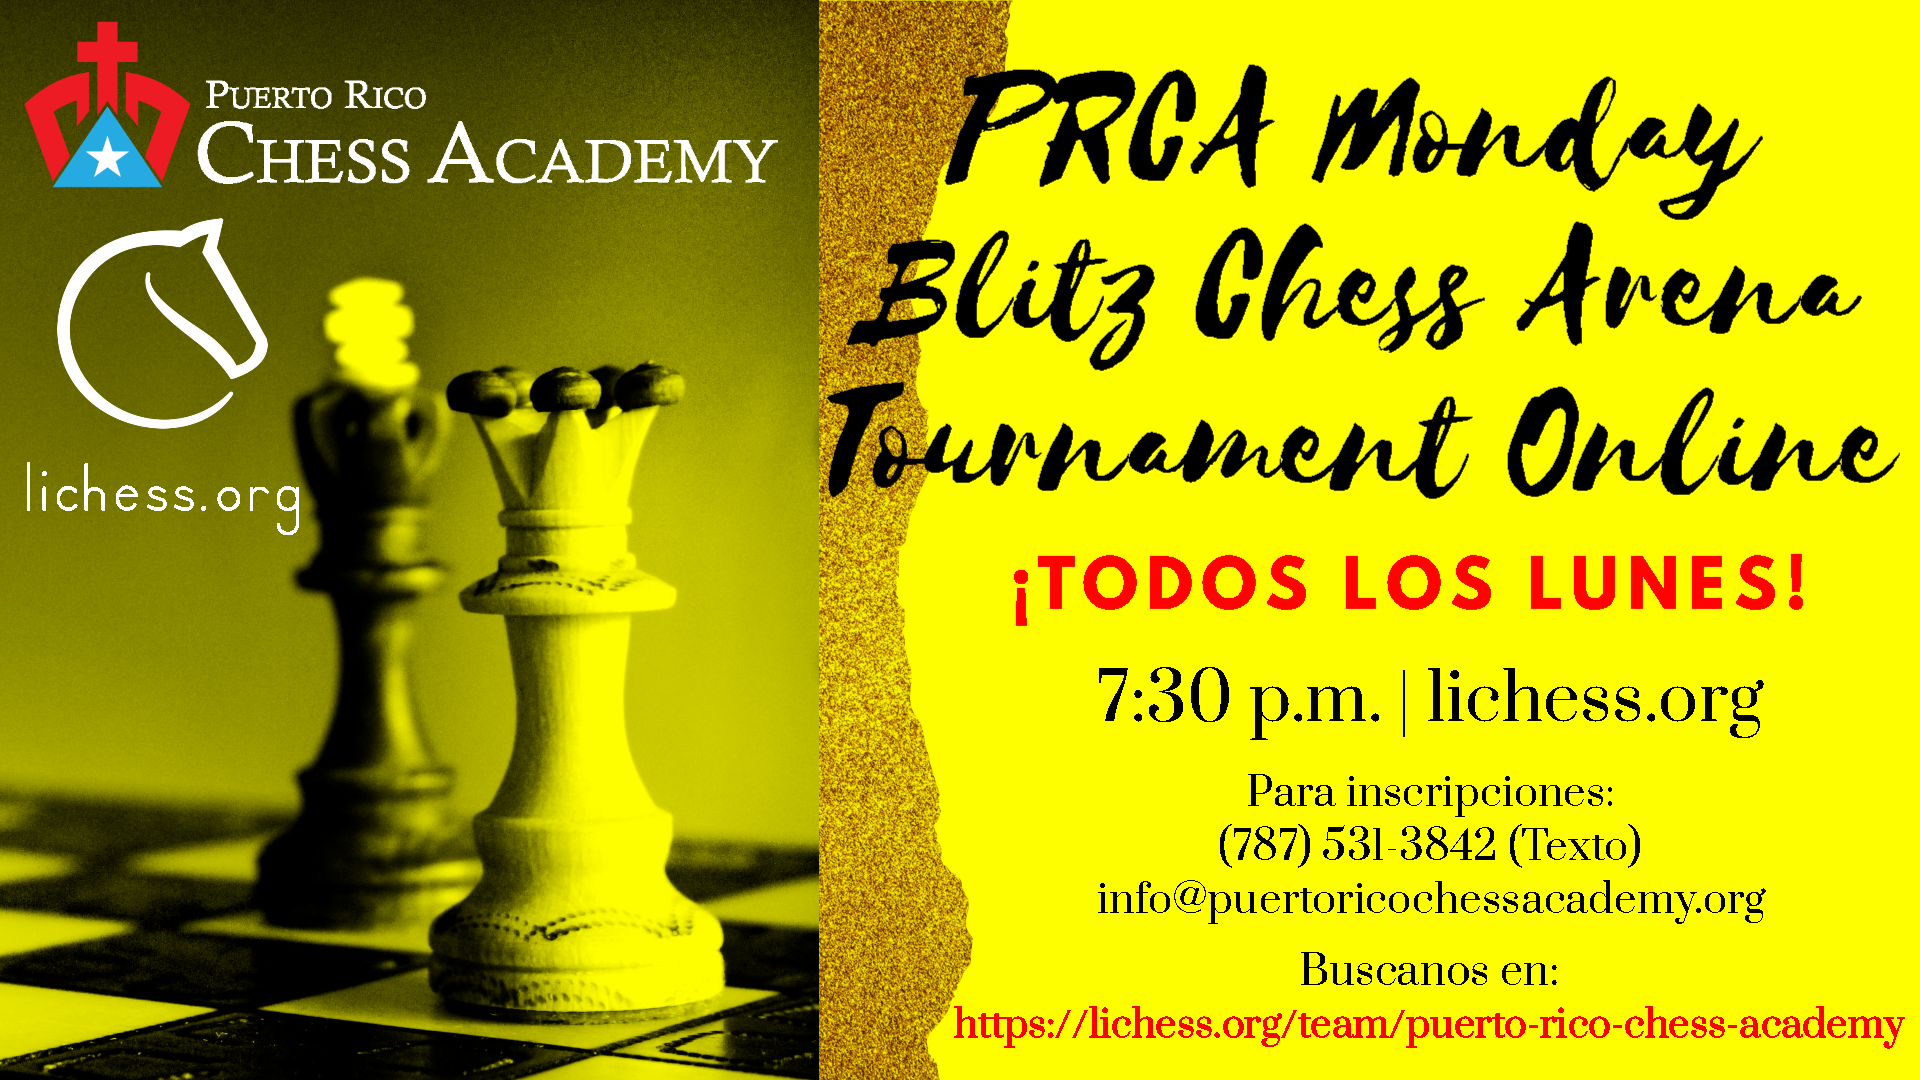 PRCA Monday Blitz Chess Arena Tournament